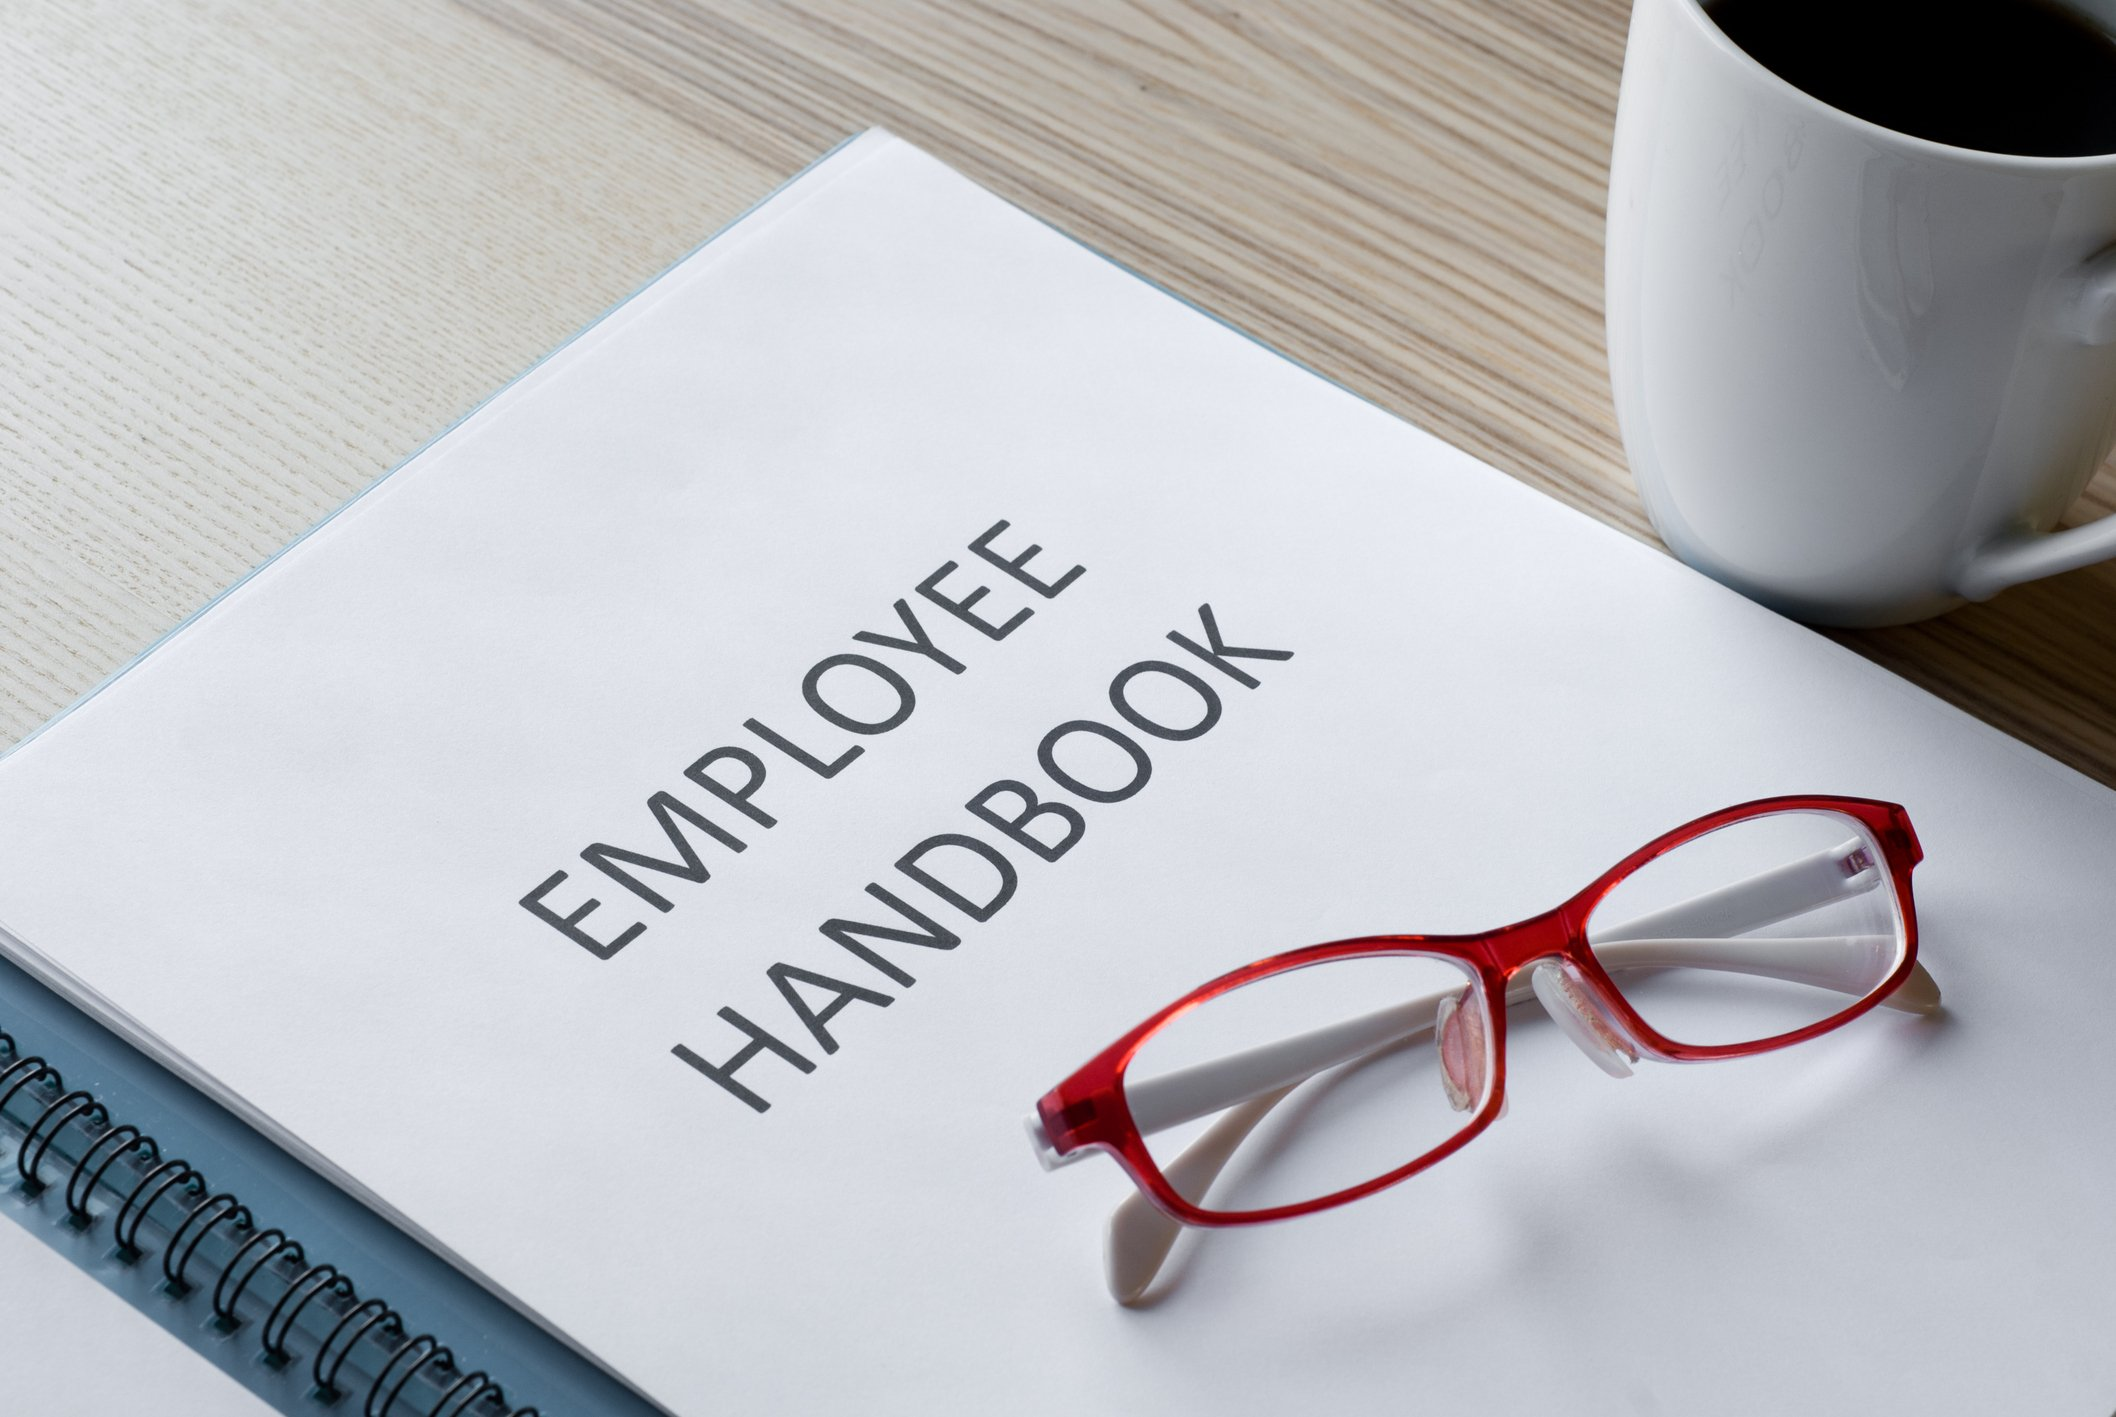 personnel handbook template - you won t believe the ridiculous reasons these people didn